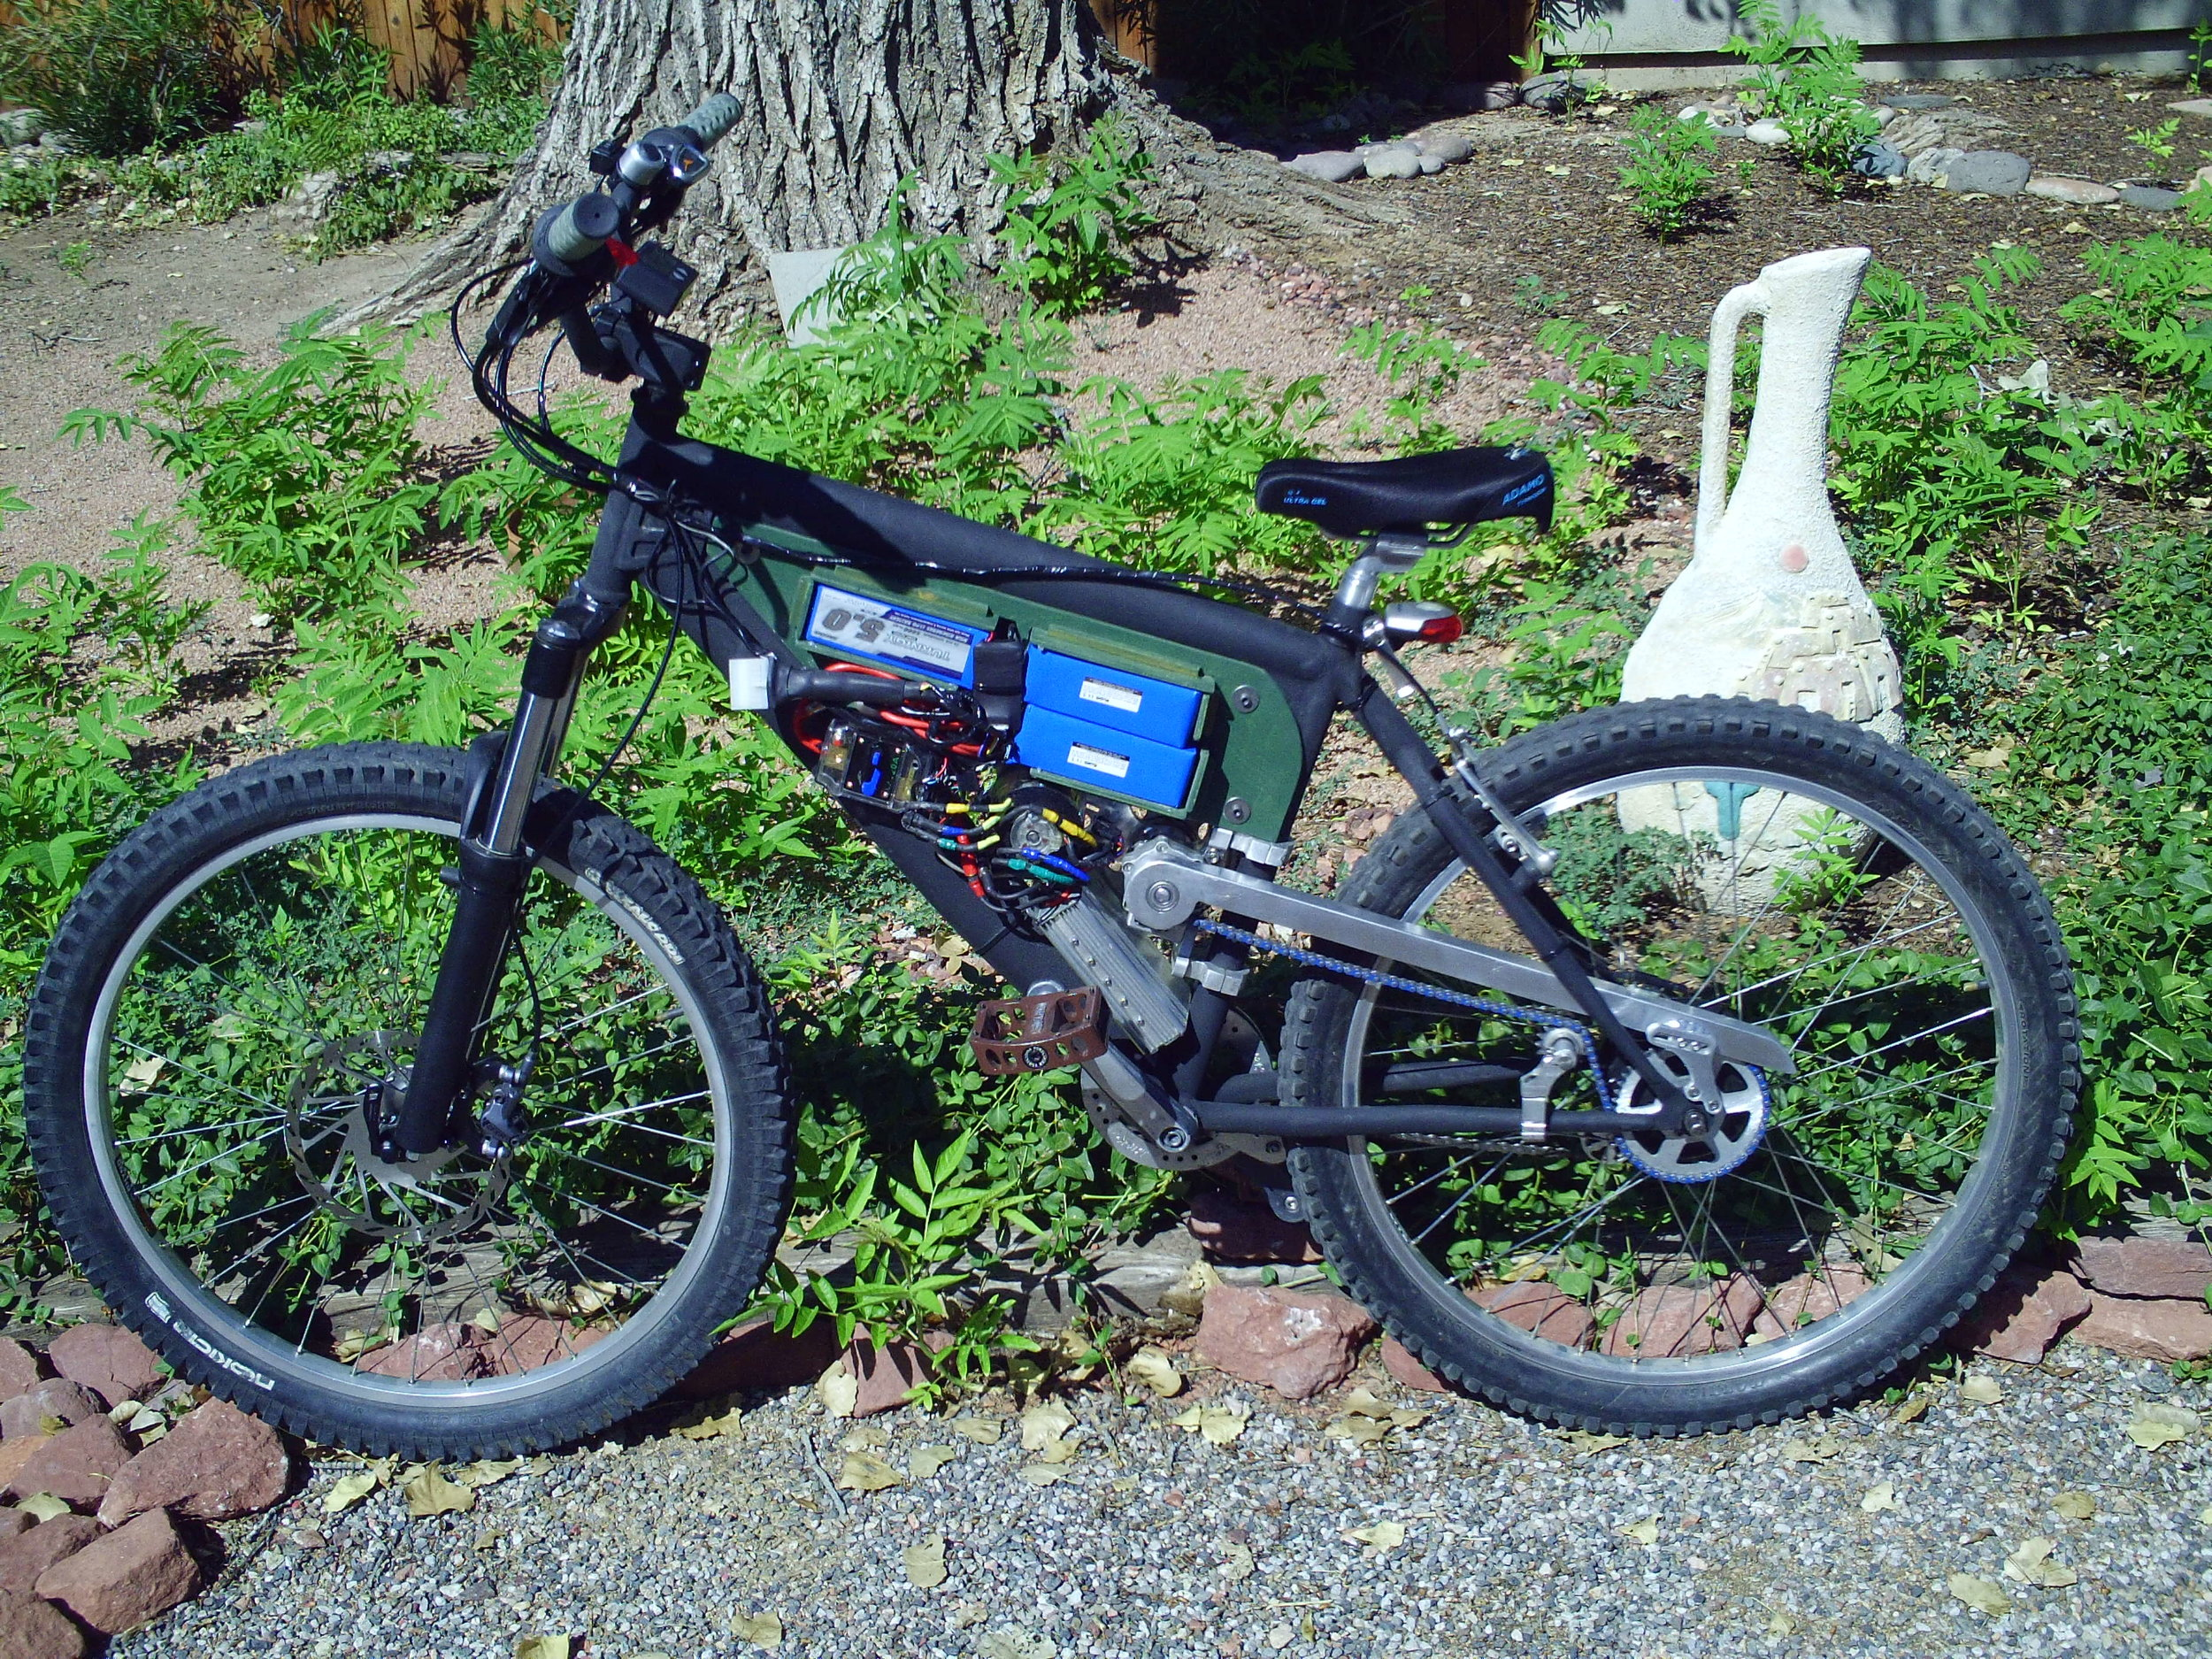 The test mule for the electronics and drivetrain tech that will be going in the first camper trike.